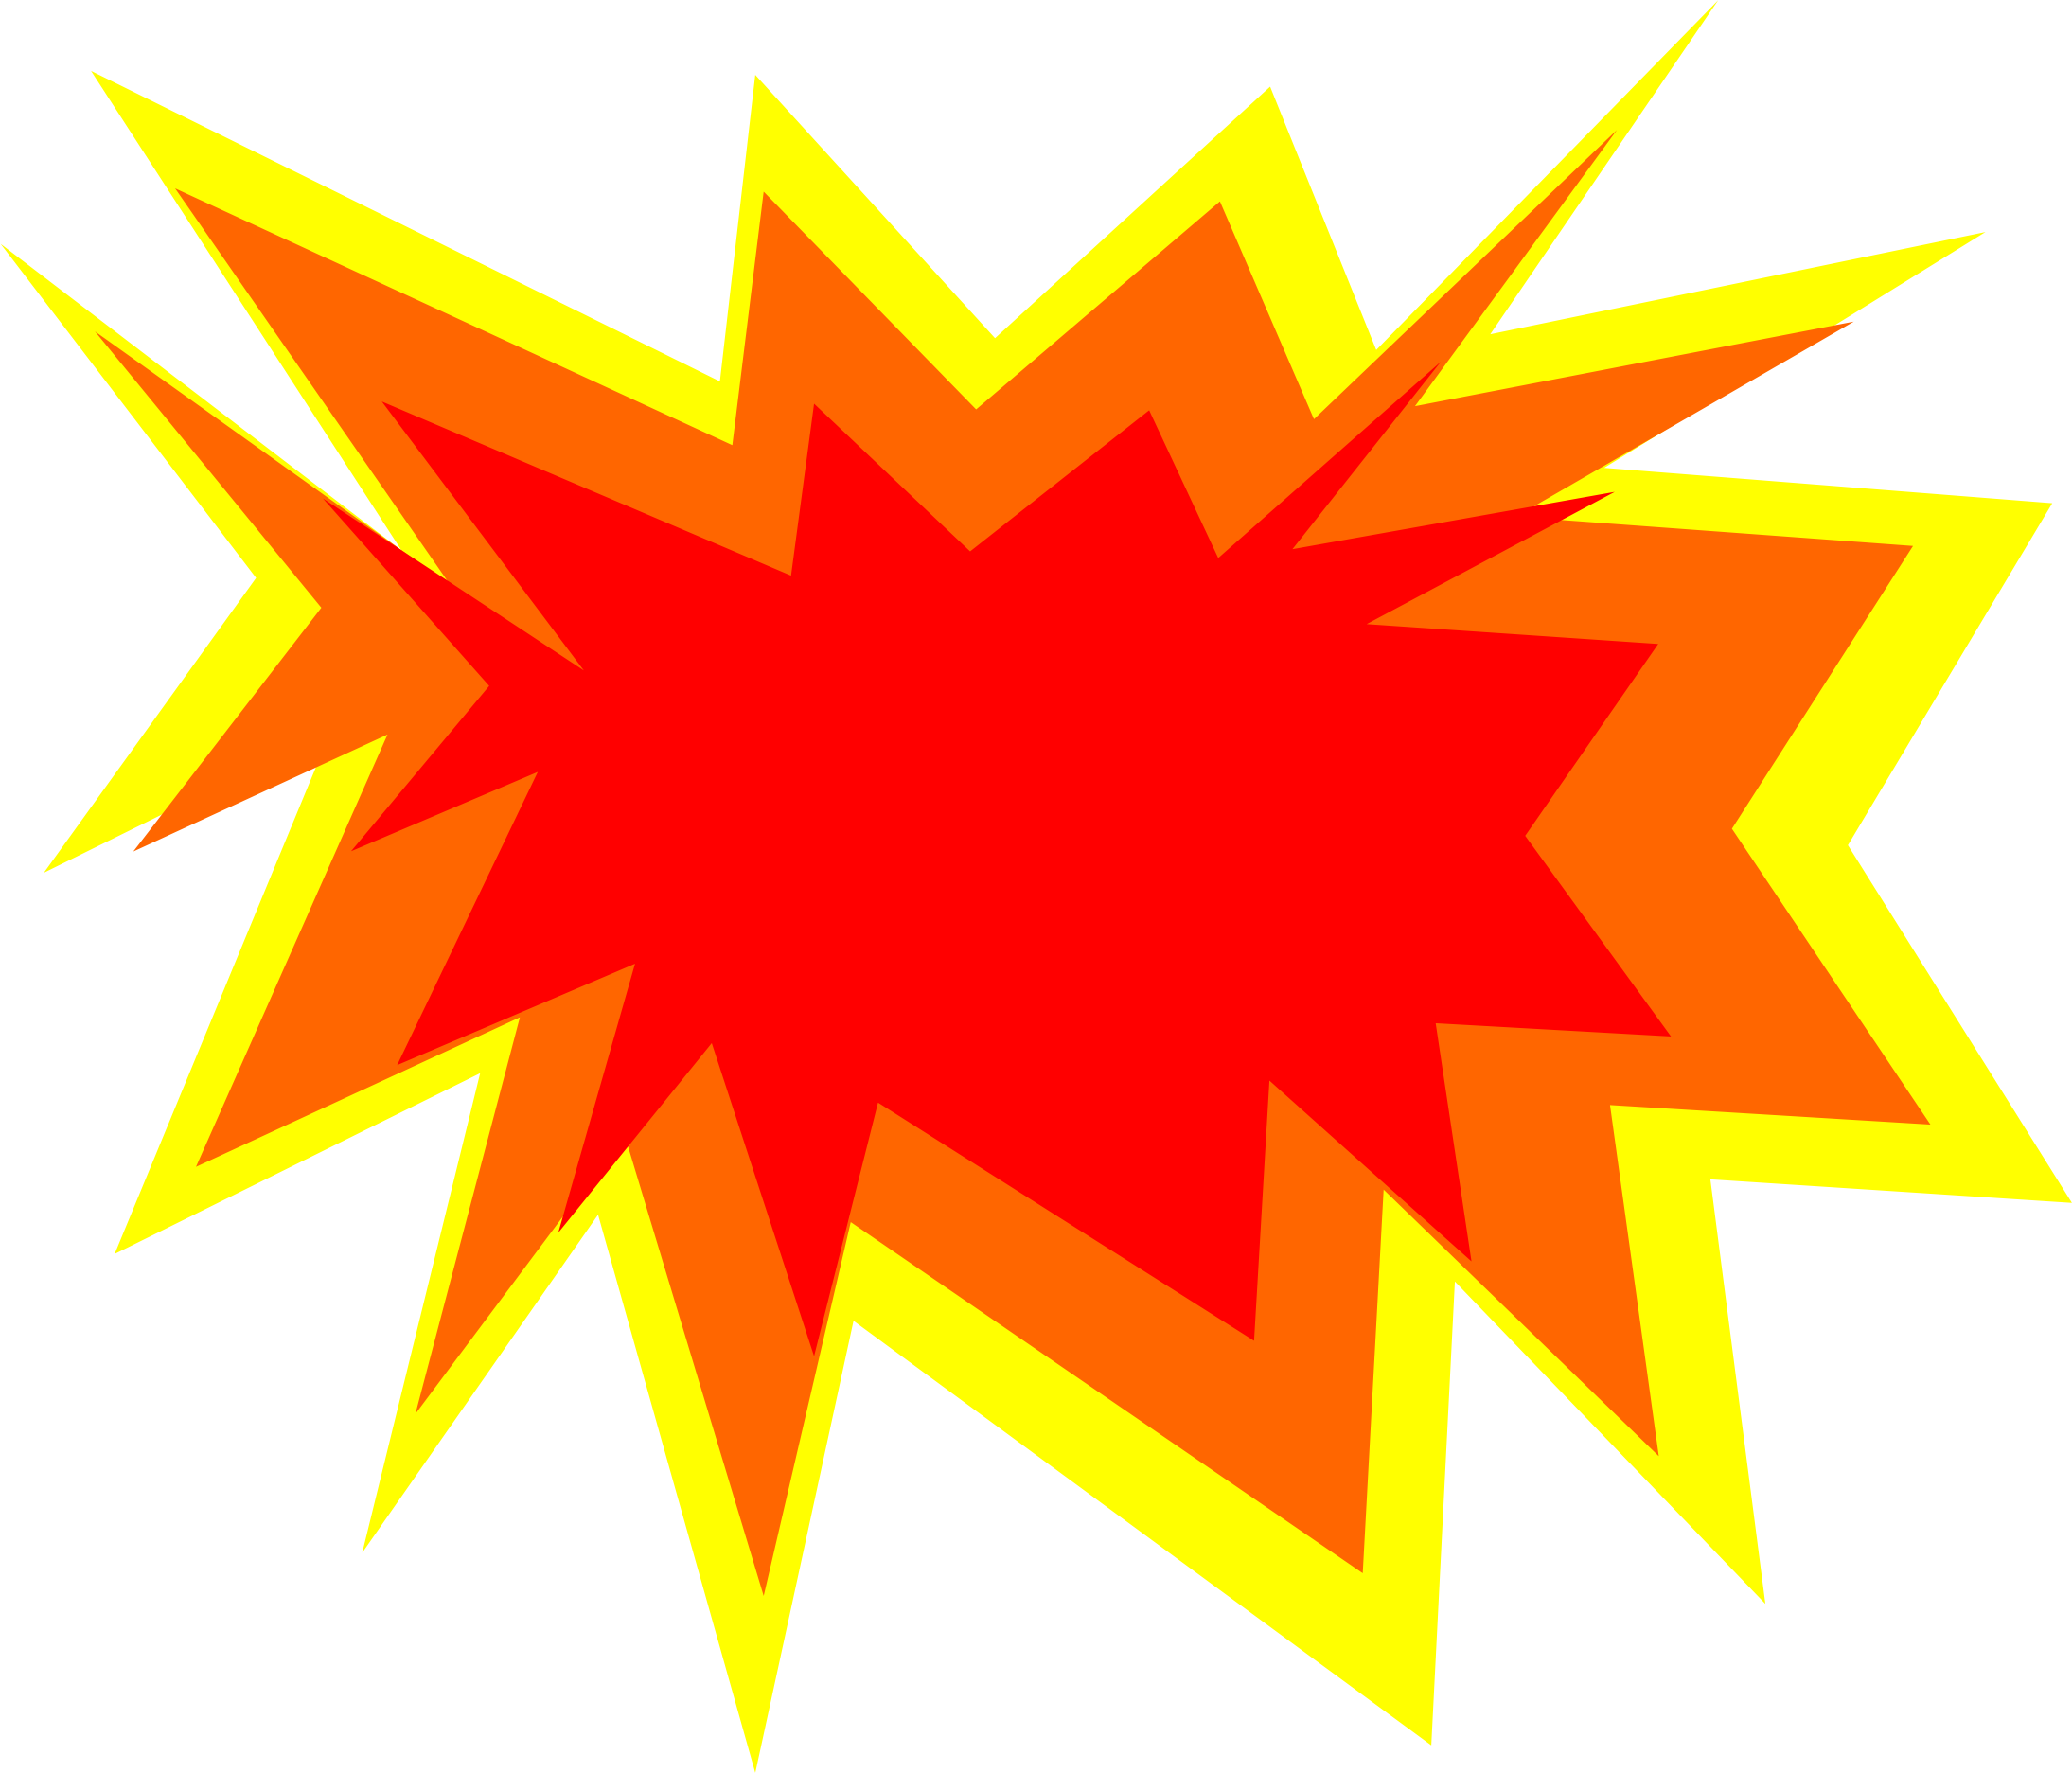 image for free explosion 21 clip art explosion clip art free rh pinterest com explosion clip art black and white explosion clip art gif